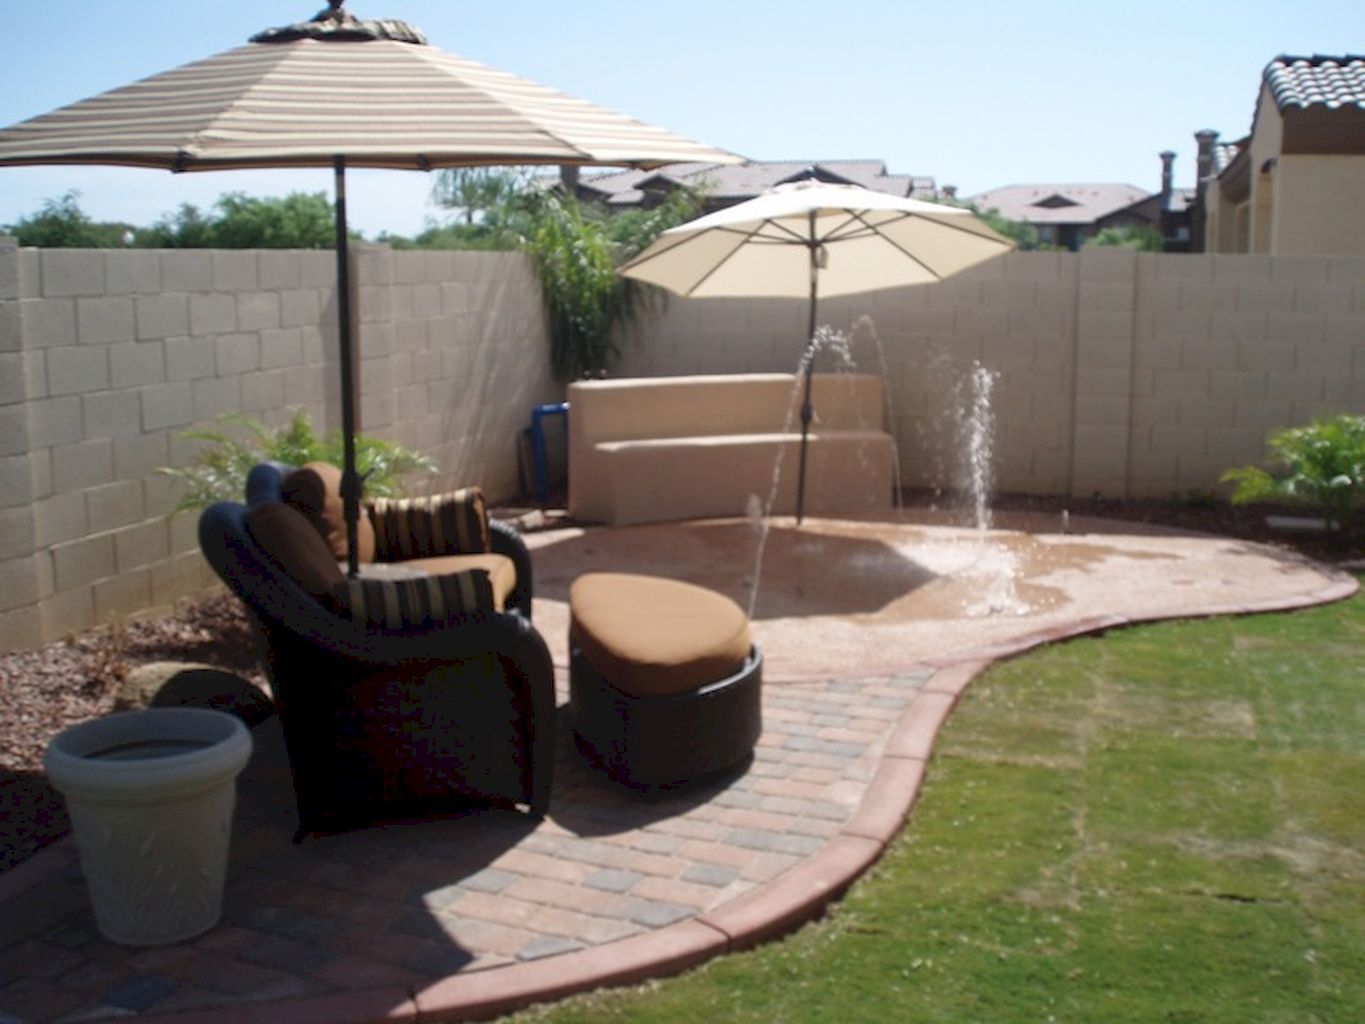 Cool 40 Beautiful Arizona Backyard Ideas On A Budget https://roomadness.com - 40 Beautiful Arizona Backyard Ideas On A Budget For The Home